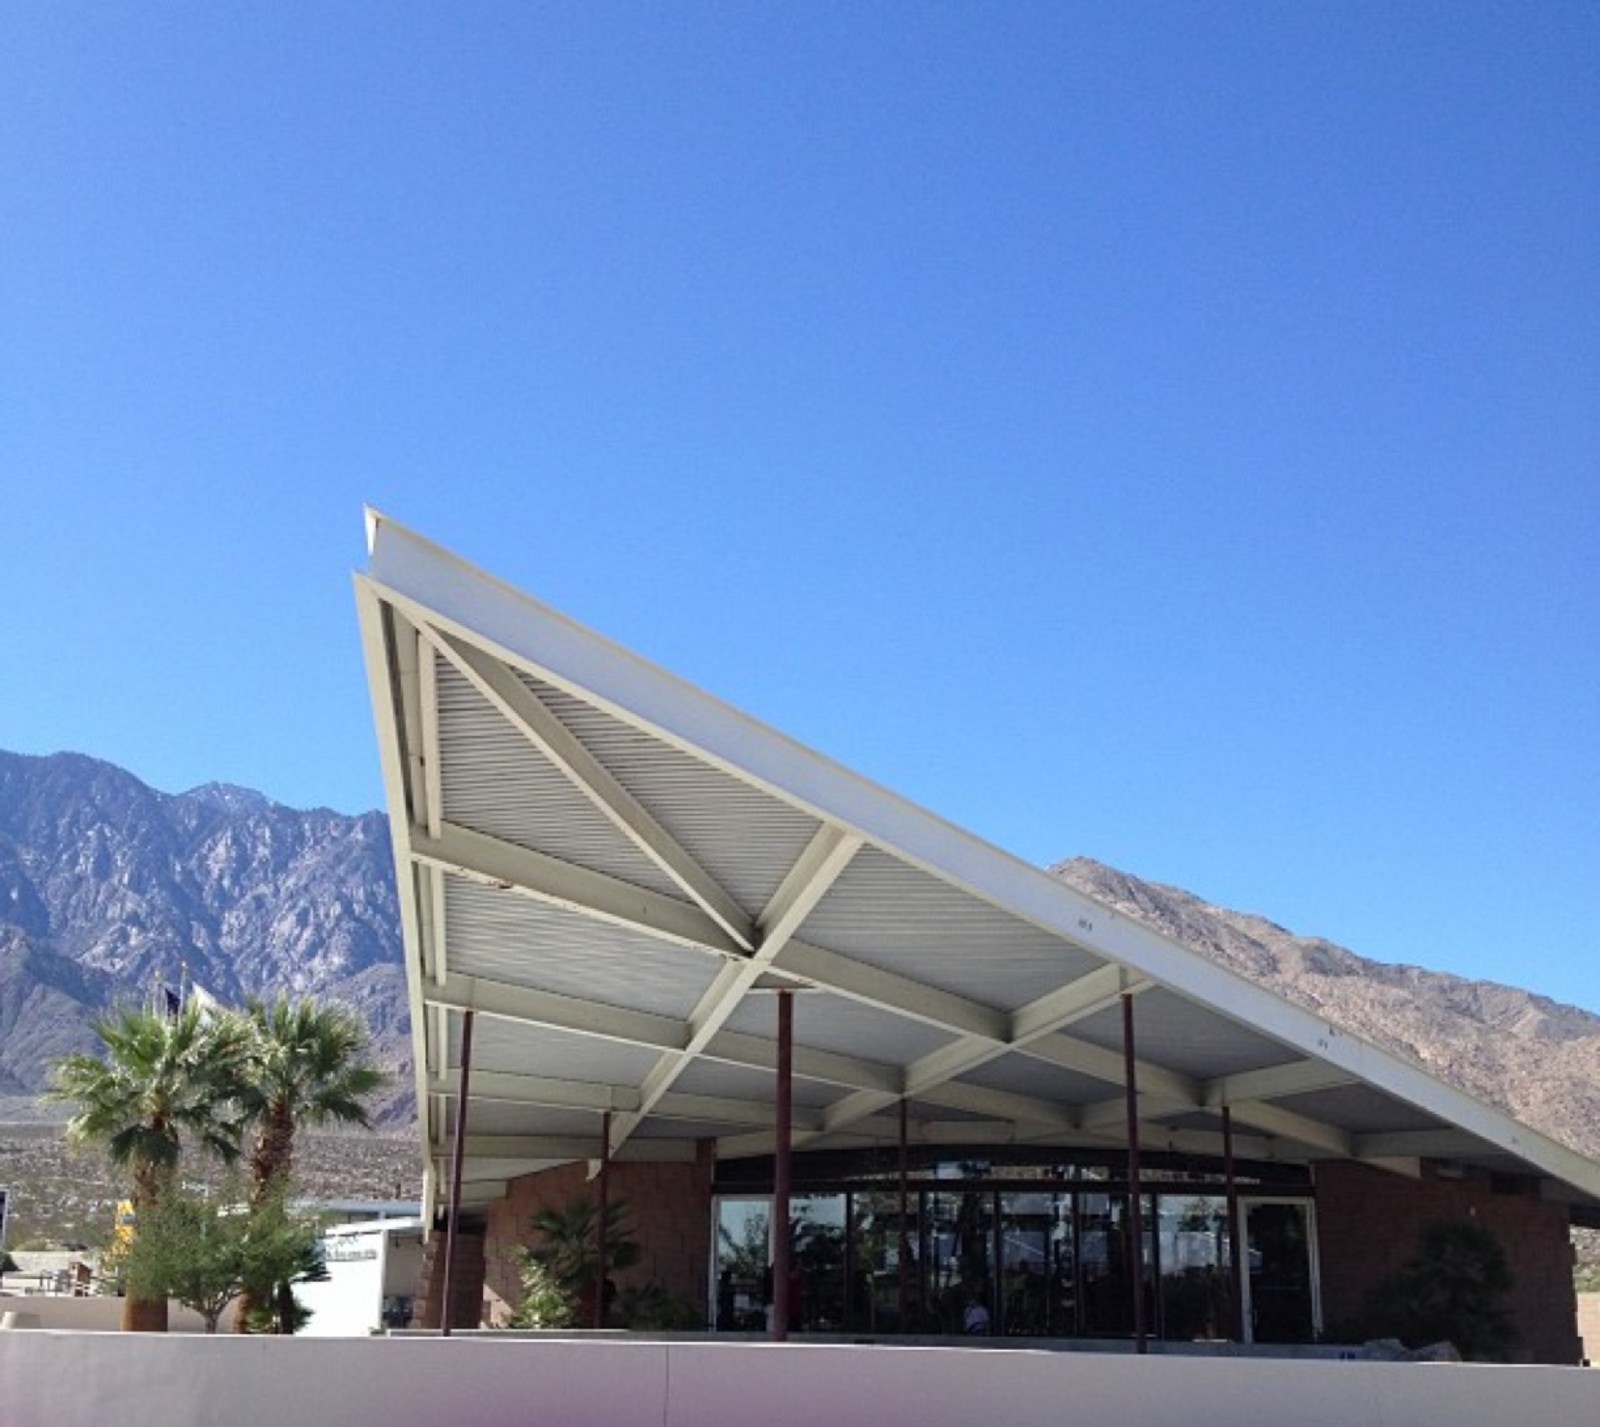 Visitors entering Palm Springs from other desert cities will first come upon the Palm Springs Tramway gas station, designed in 1965 by Albert Frey and Robson Chambers, topped by a hyperbolic paraboloid roof.  Photo 21 of 23 in 20 Desert Homes from Cool, Modern Sights in the Coachella Valley